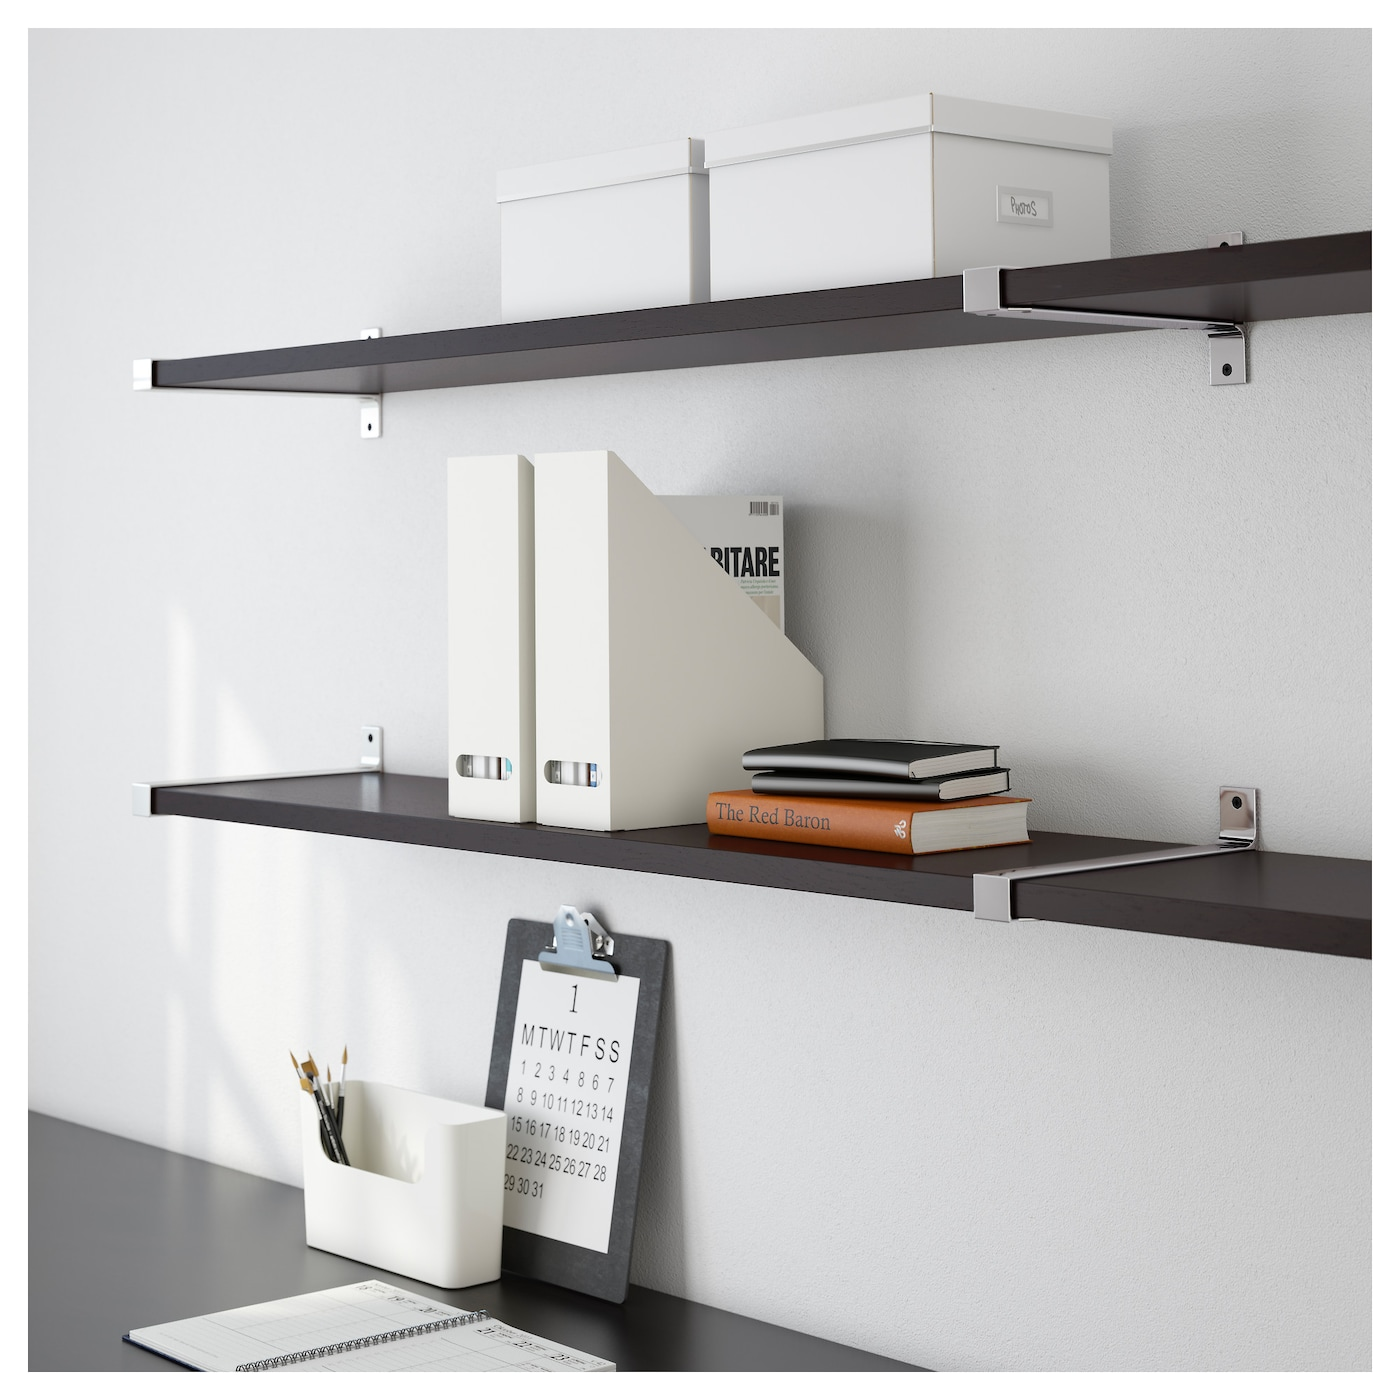 IKEA EKBY BJÄRNUM/EKBY JÄRPEN wall shelf Partitioning wall inside keeps shelves in place.